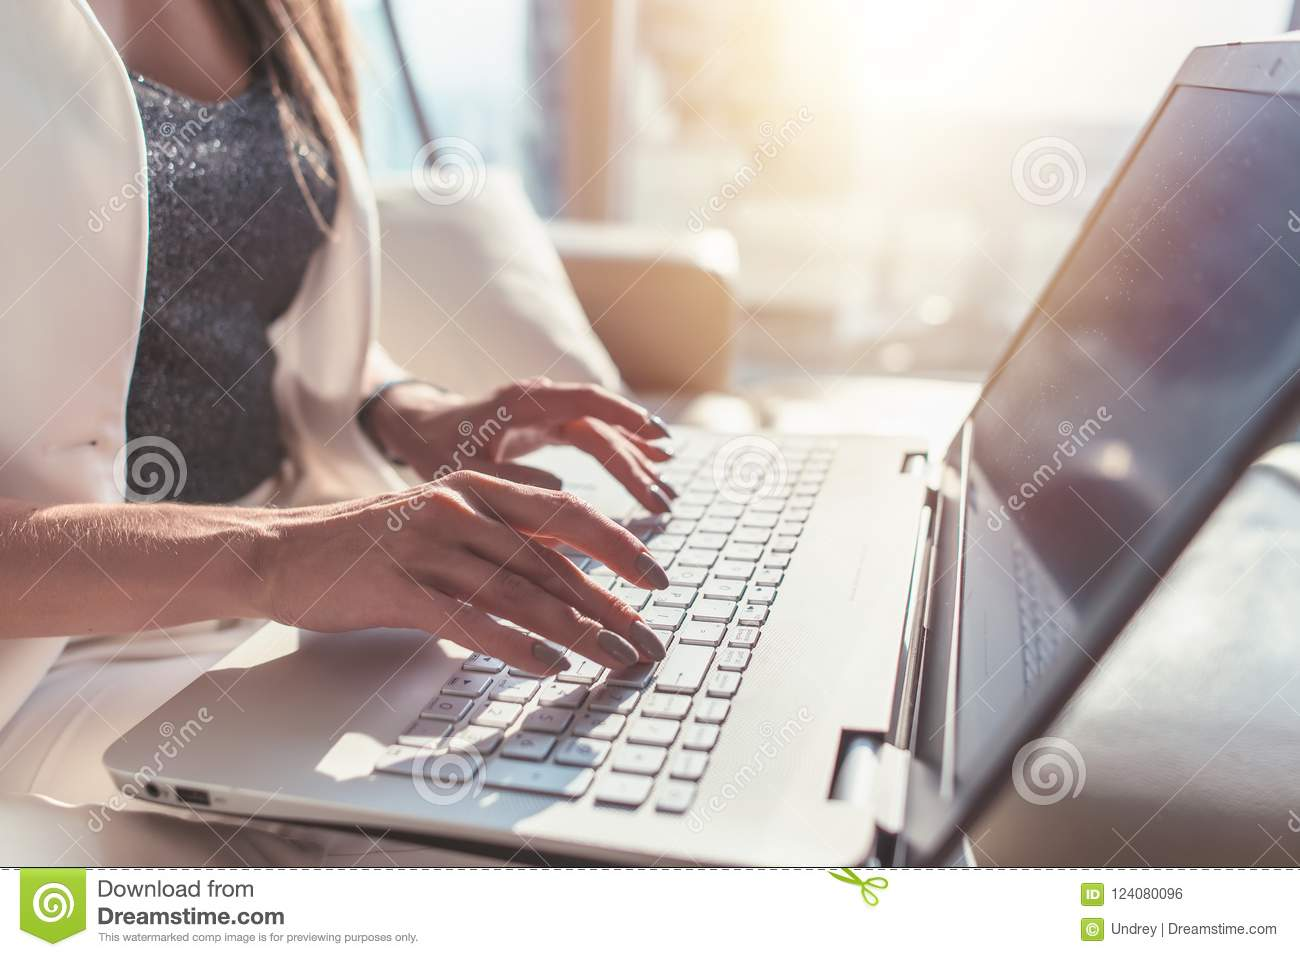 Closeup Of Woman Hands Typing On Laptop Keyboard Stock